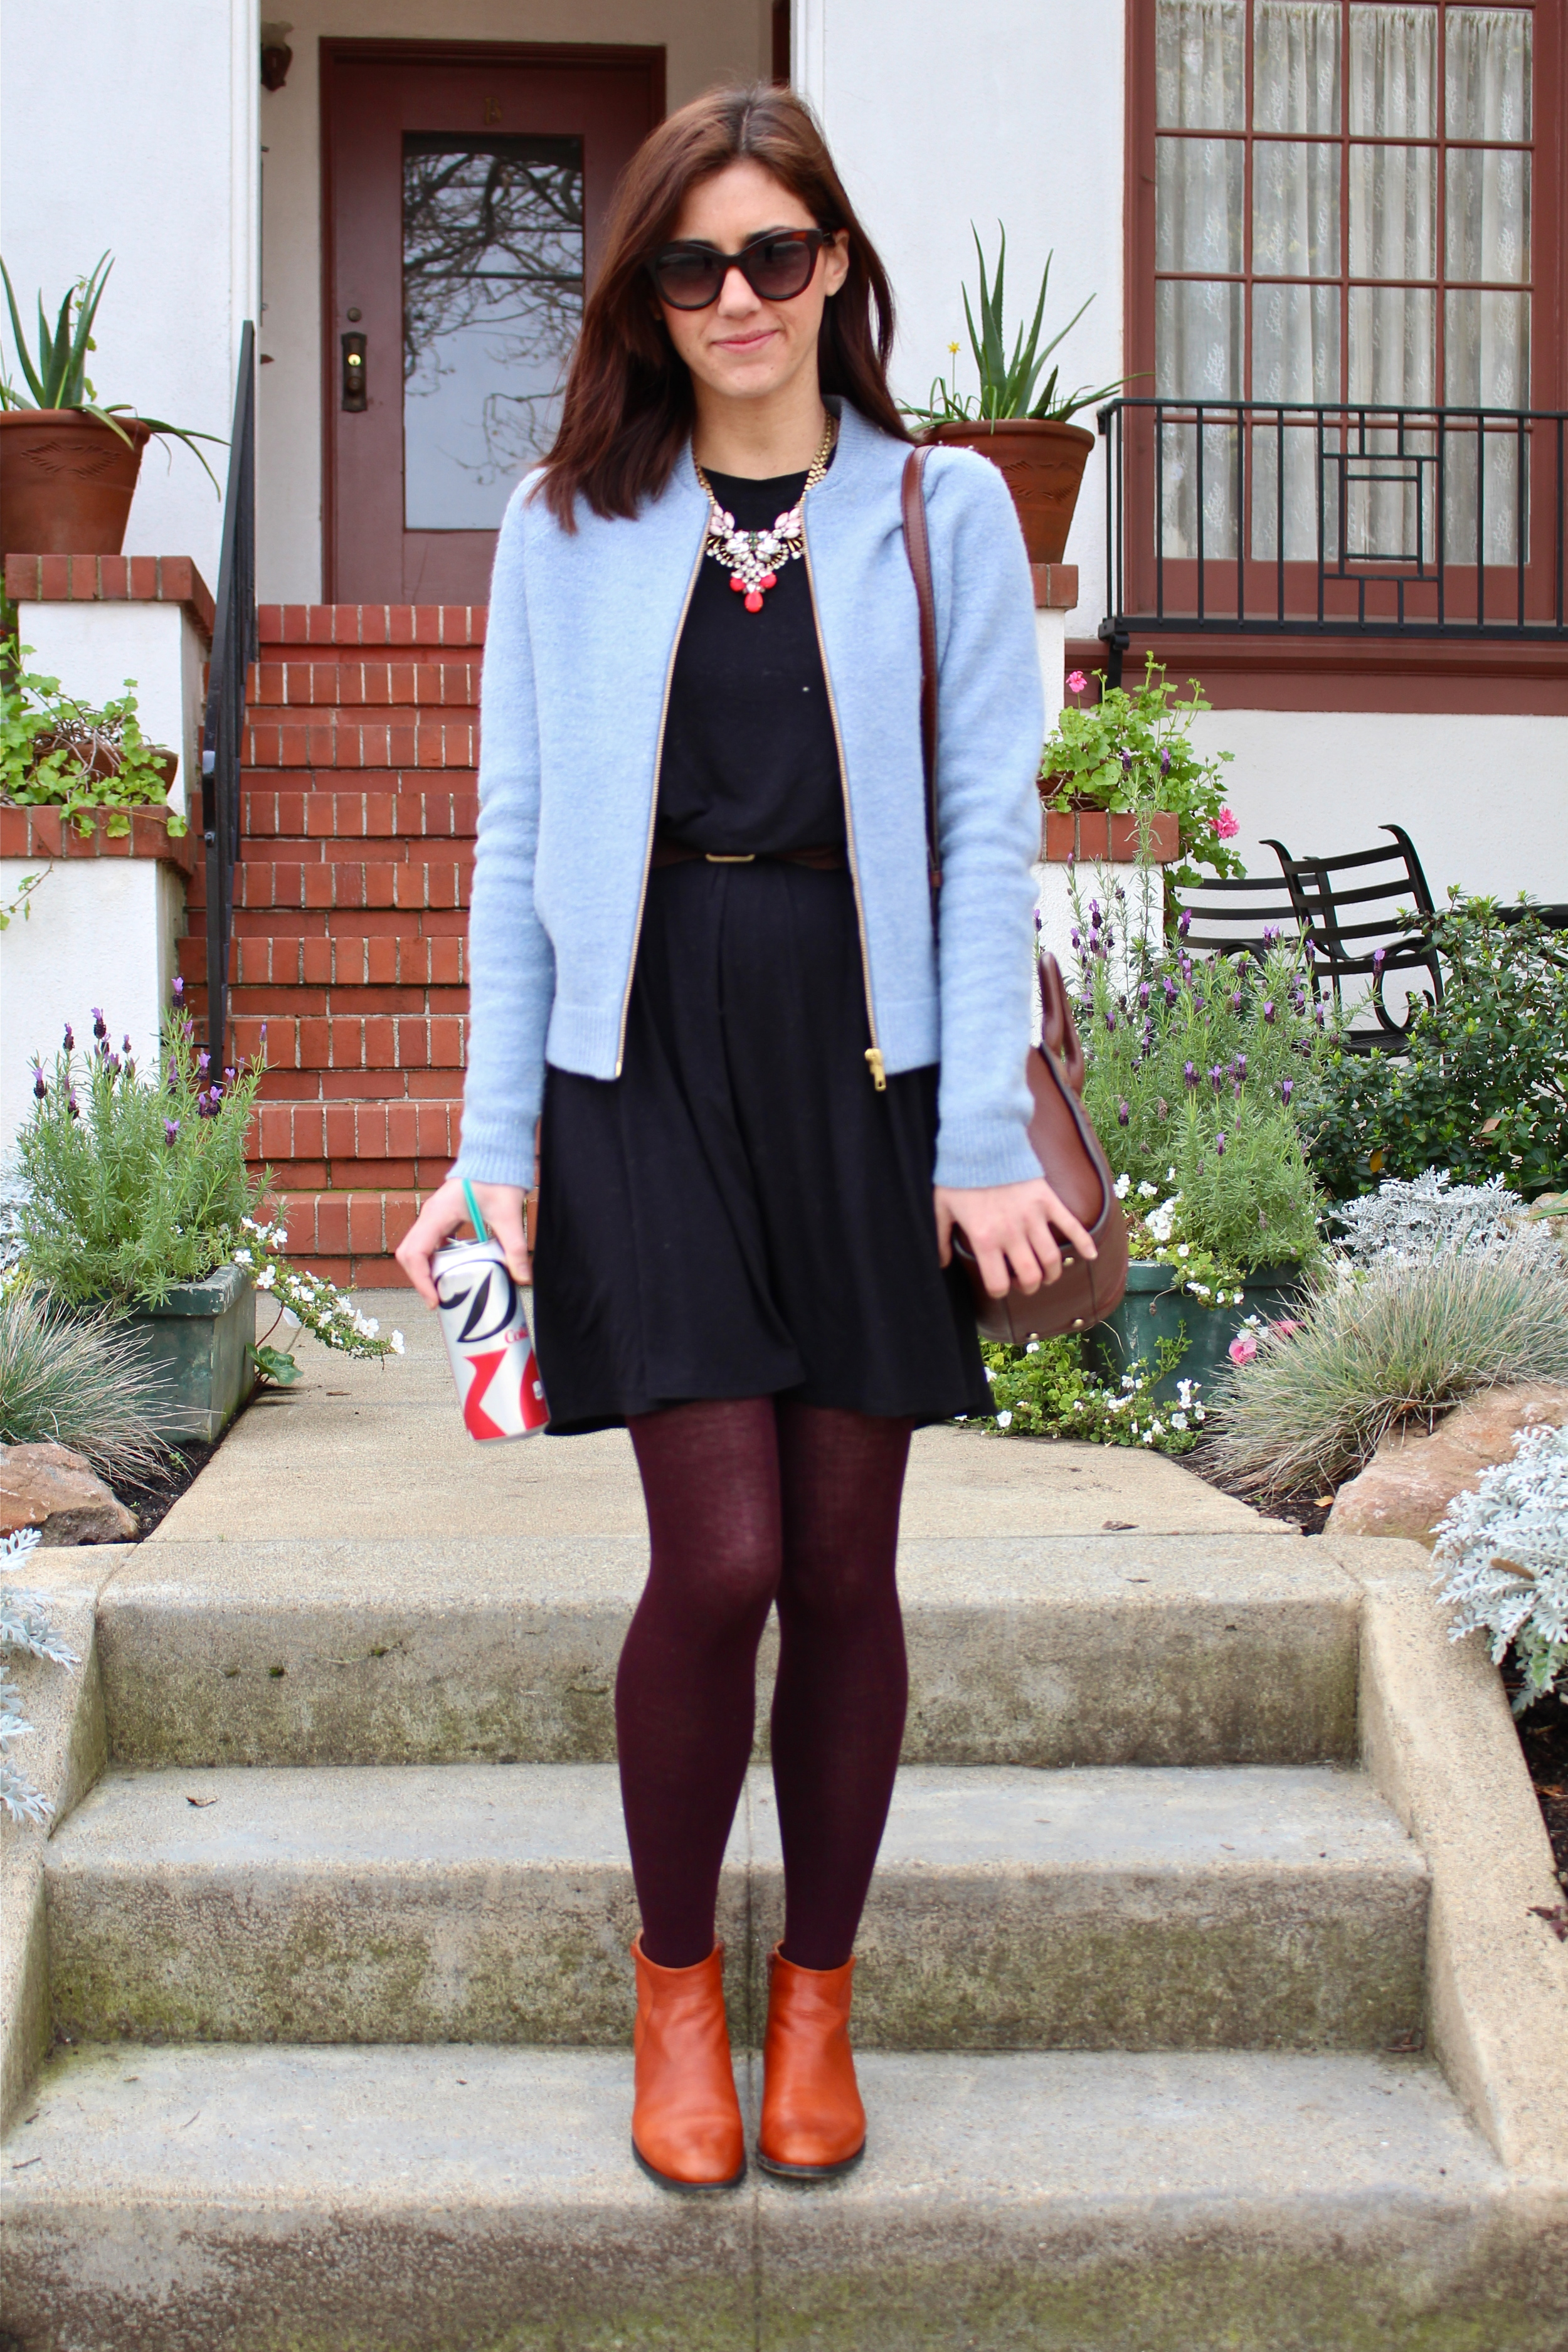 Jacket : J.Crew; Dress: BCBG, Morning Glory; Tights: Forever21; Marly Low Heel Bootie: Coclico; Bag: Kate Spade; Glasses: Marc by Marc Jacobs; Necklace: J.Crew